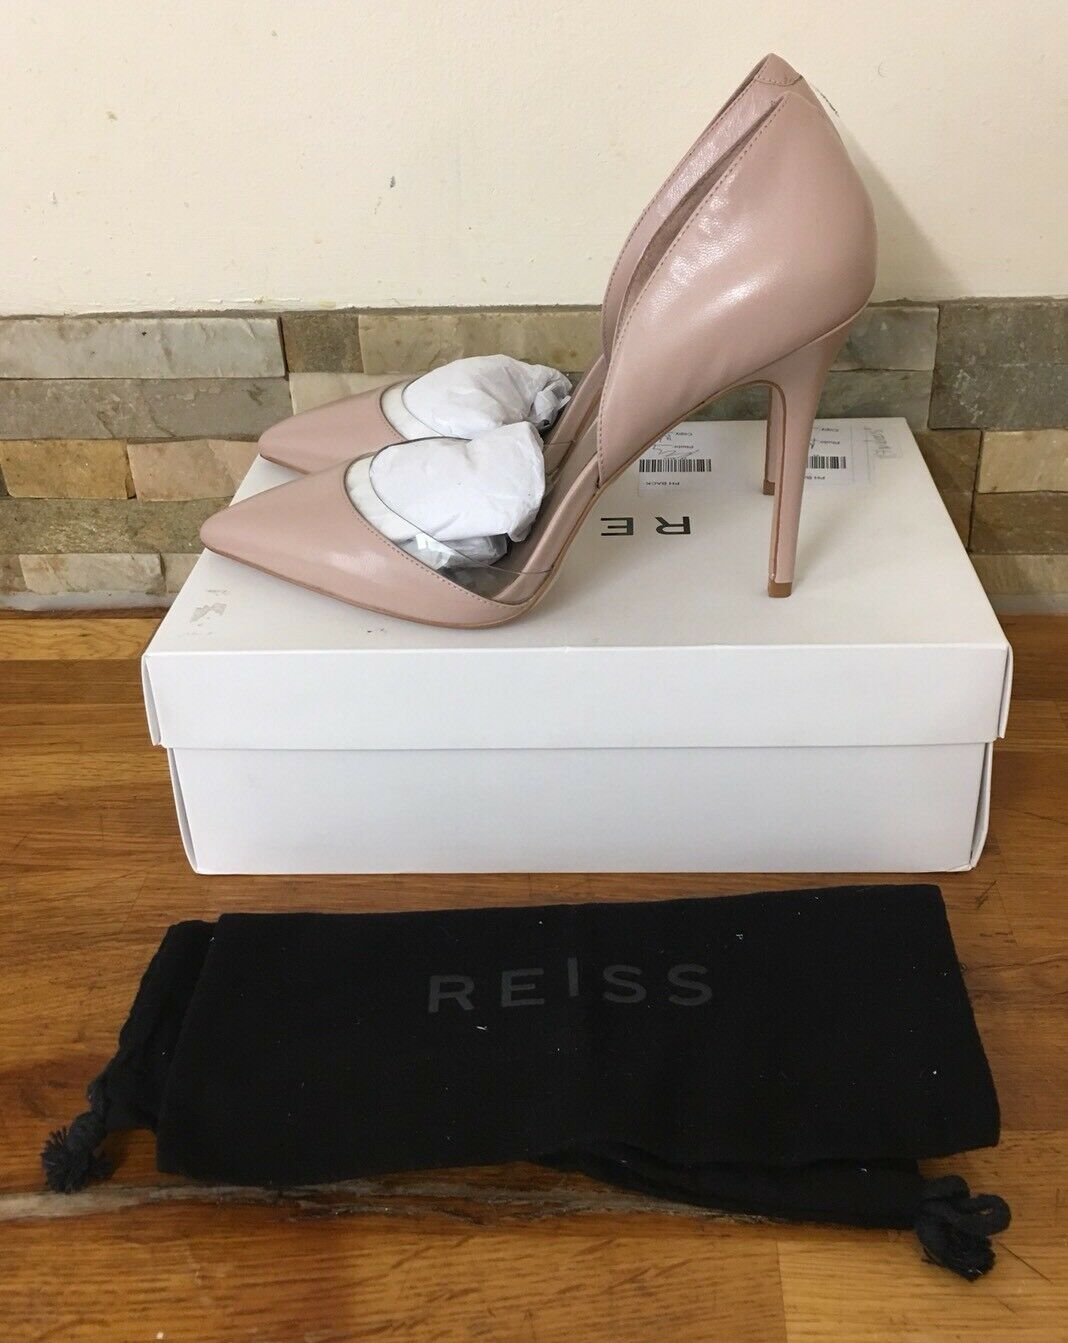 REISS Paolina Leder And Vinyl Schuhes Größe UK 8/41